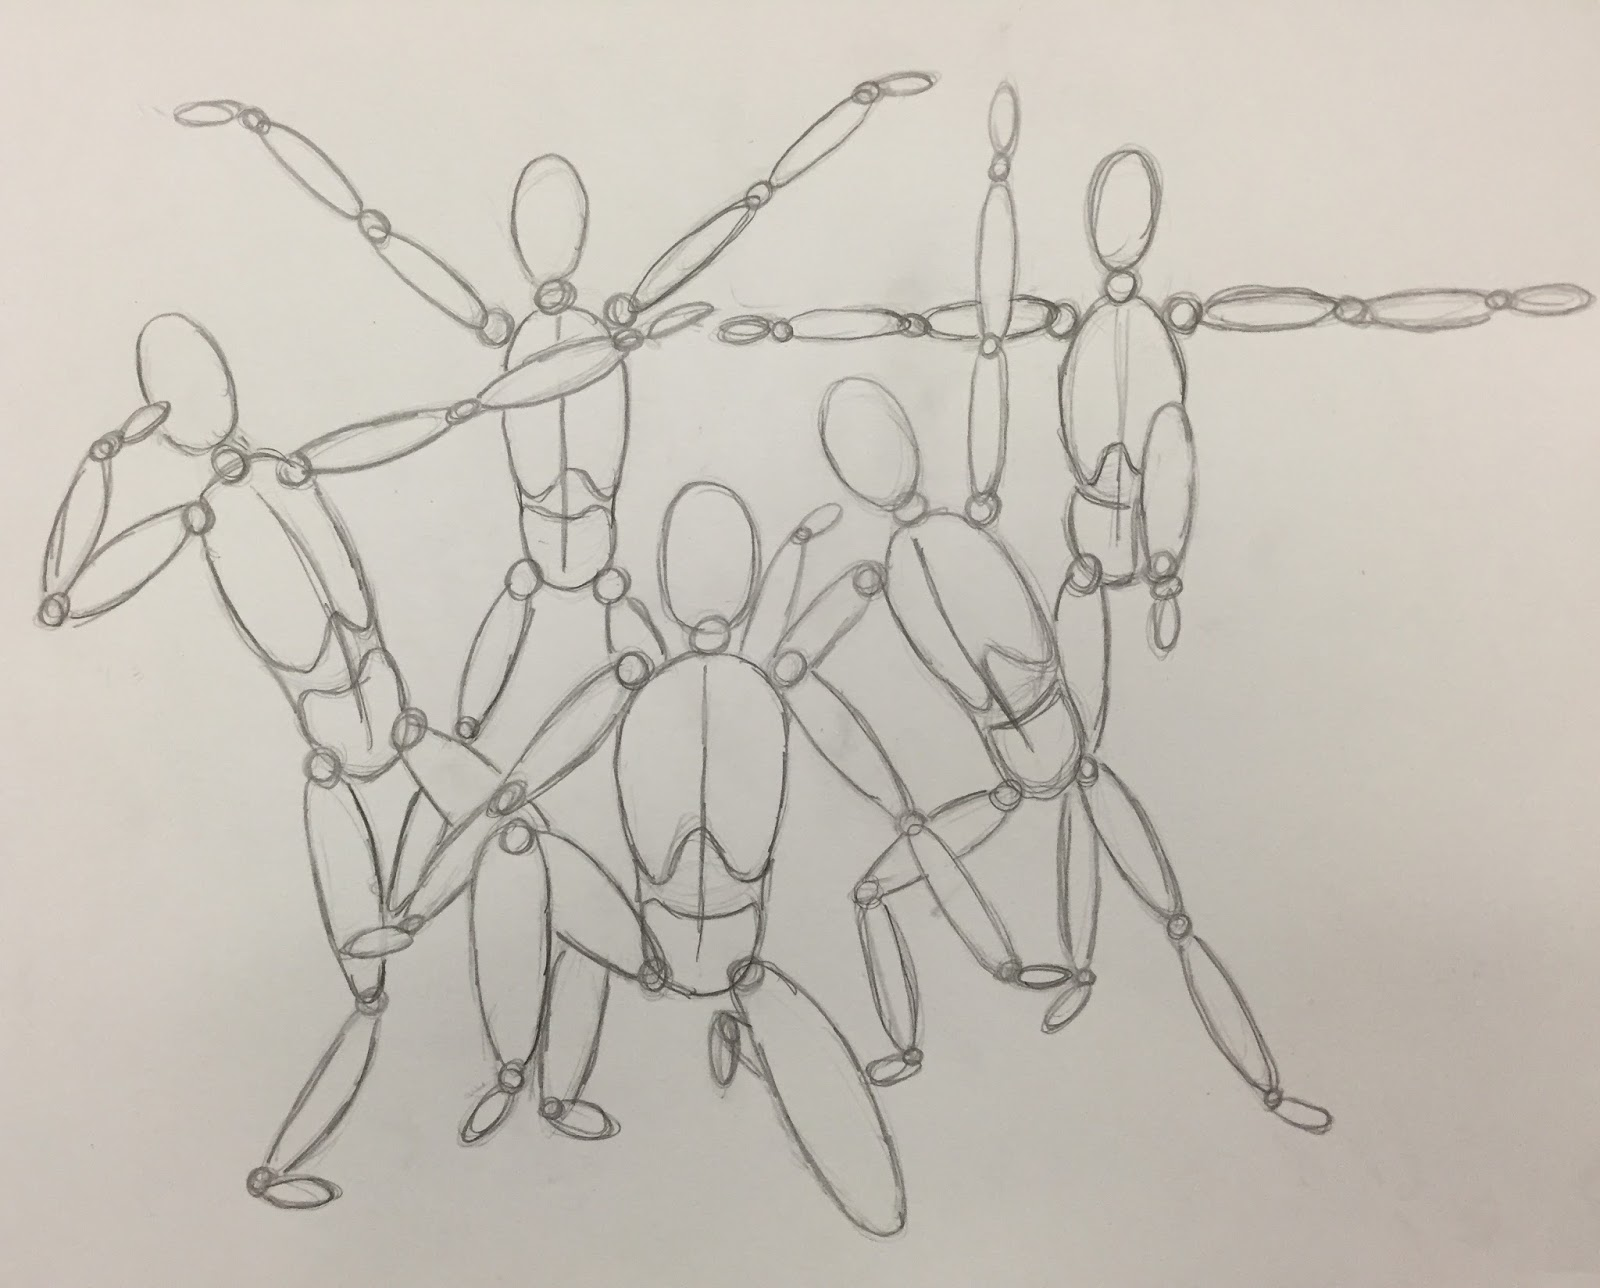 Line Art Figures : Kids art market oval figure drawing